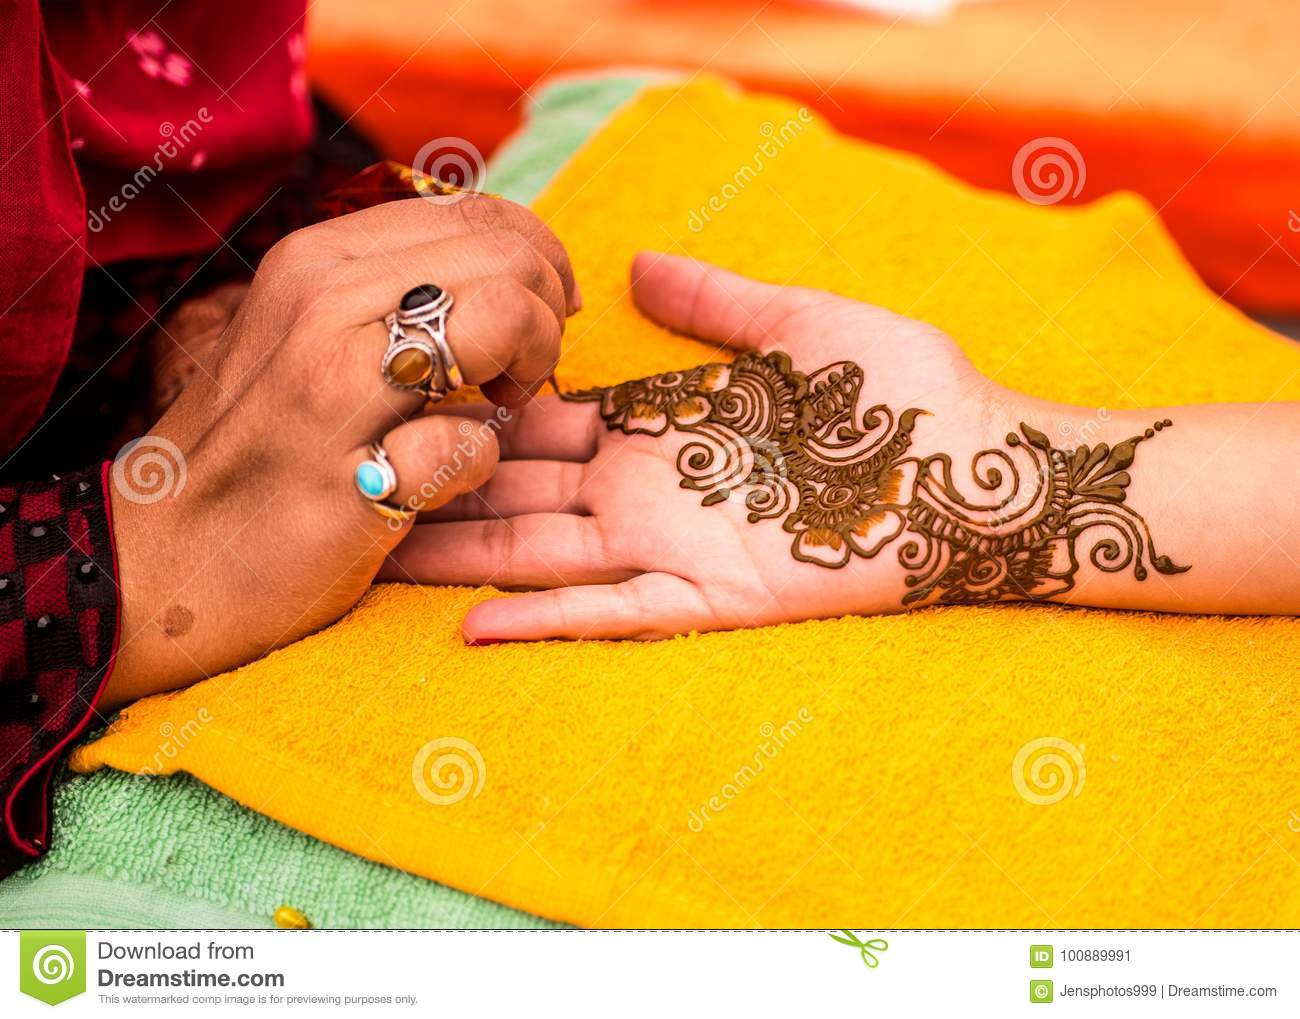 Henna Mehndi Vector Free Download : Indian wedding guest having mehndi applied to palm of hand